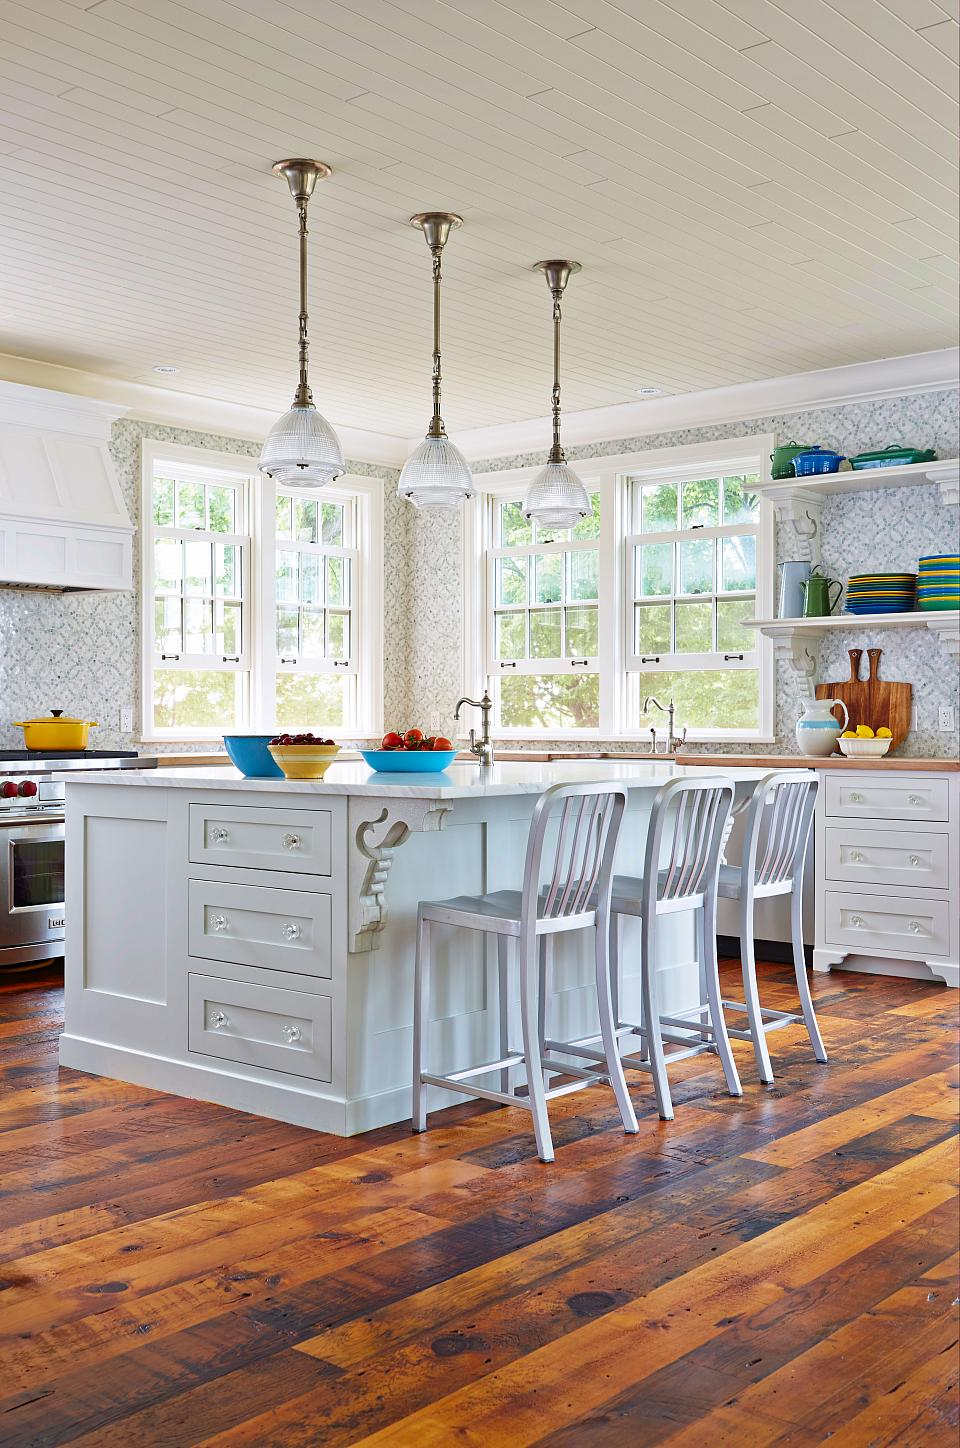 A large country kitchen for family to shuck corn, bake blueberry pies, and raid the kitchen at midnight.